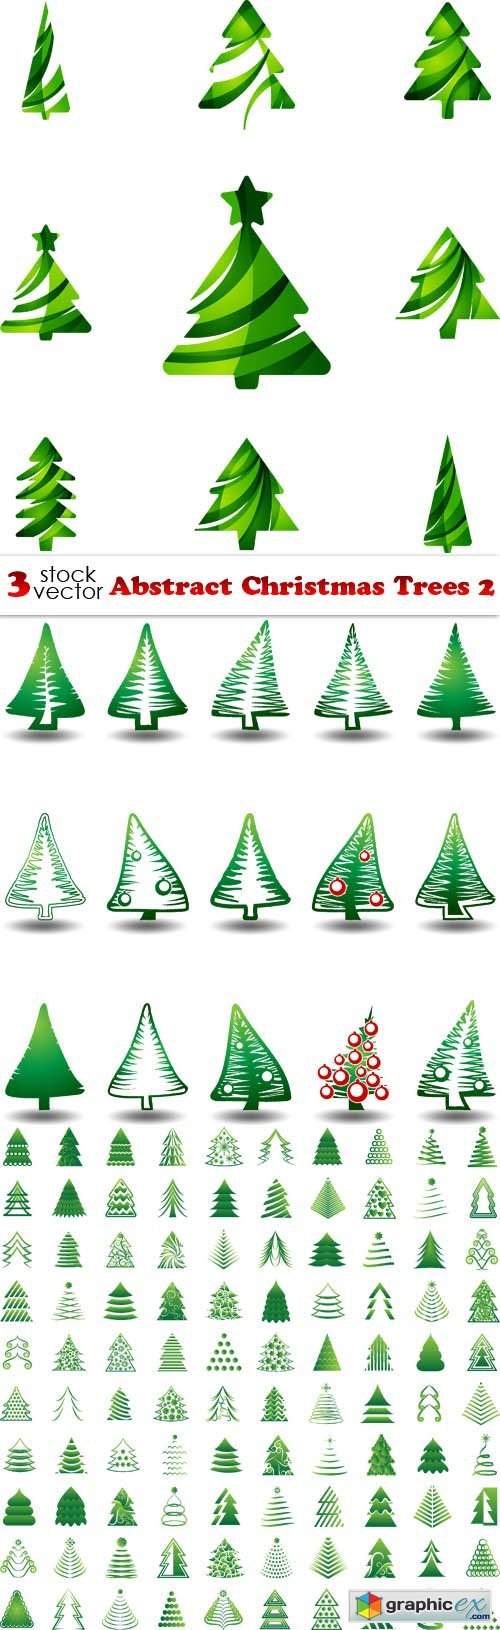 Vectors - Abstract Christmas Trees 2